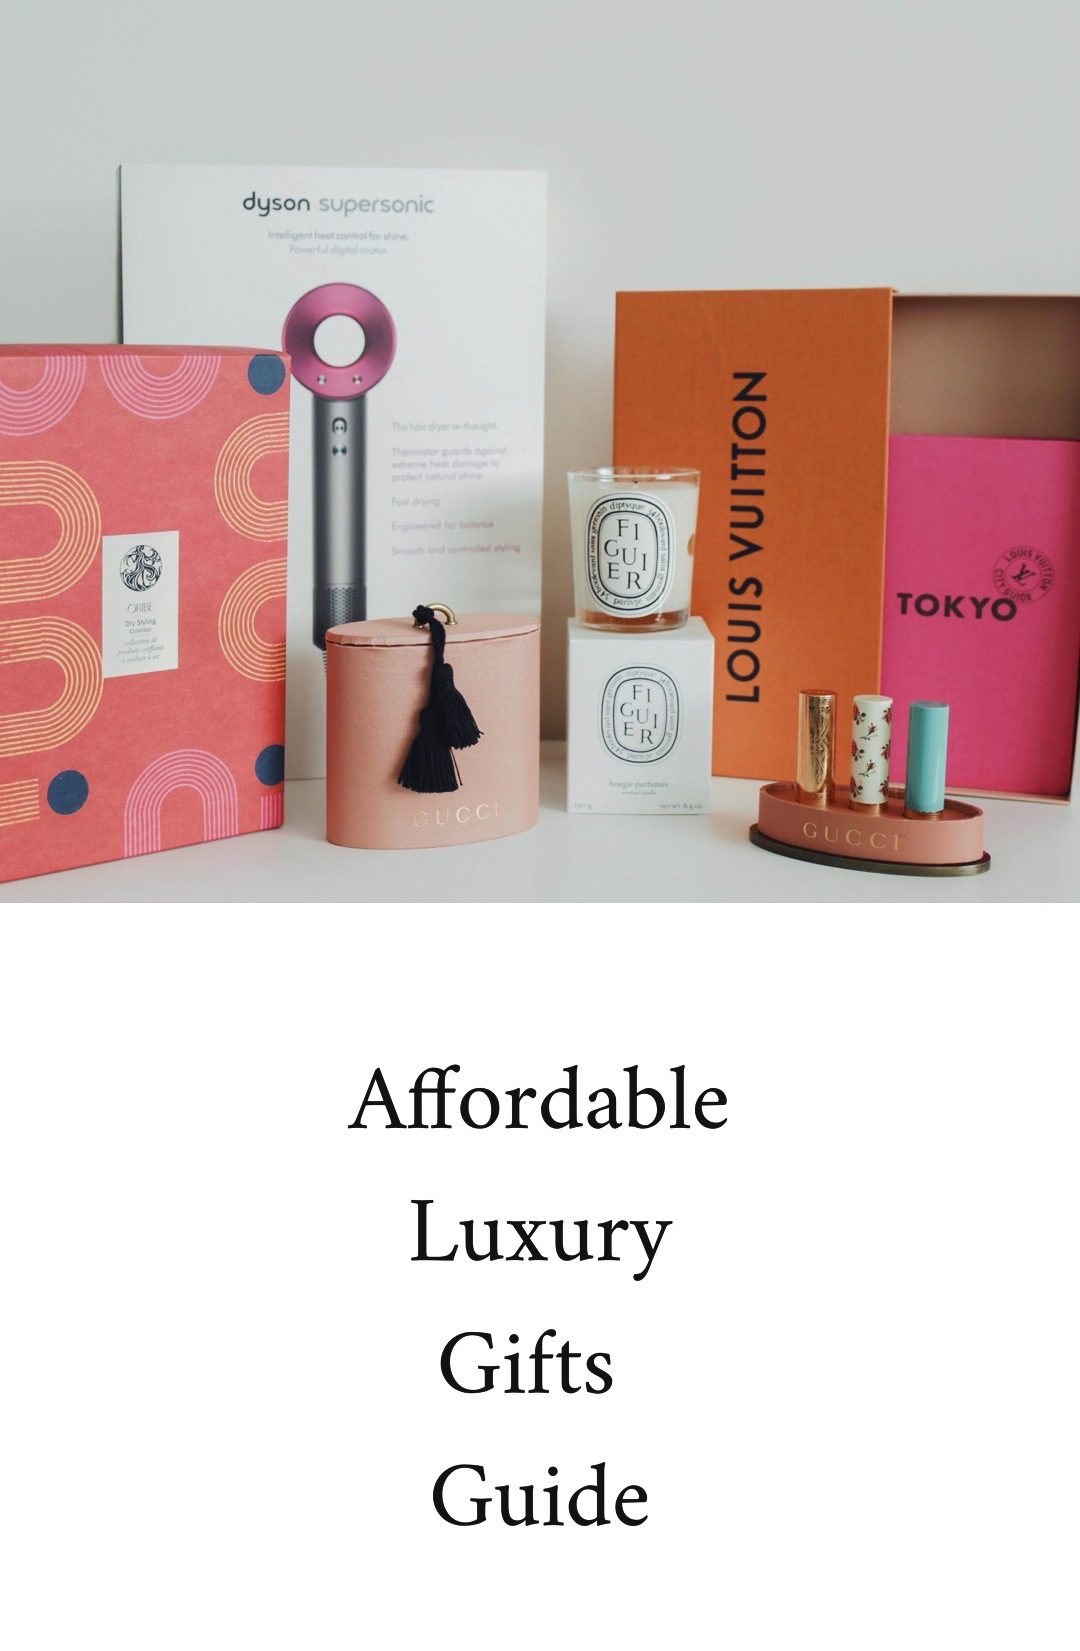 Holiday gift guide for women 2019 – Affordable luxury gift ideas - Gucci lipstick, Louis Vuitton Guide, Diptyque candle, Dyson hair dryer, Oribe holiday collection set